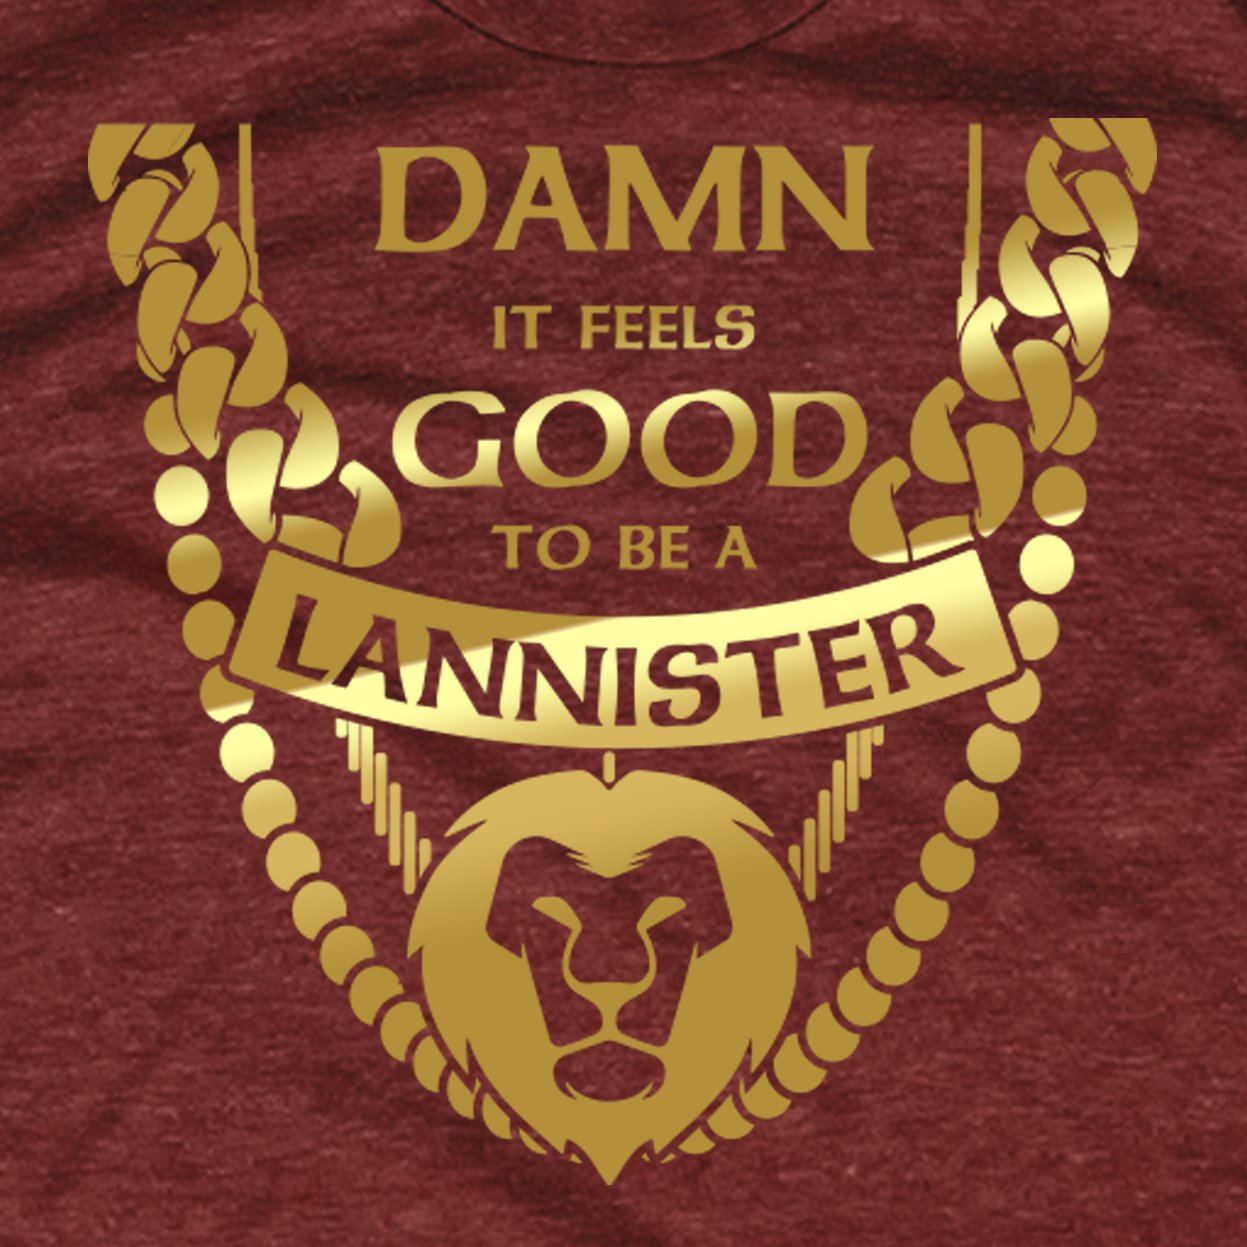 Damn It Feels Good to Be a Lannister shirt